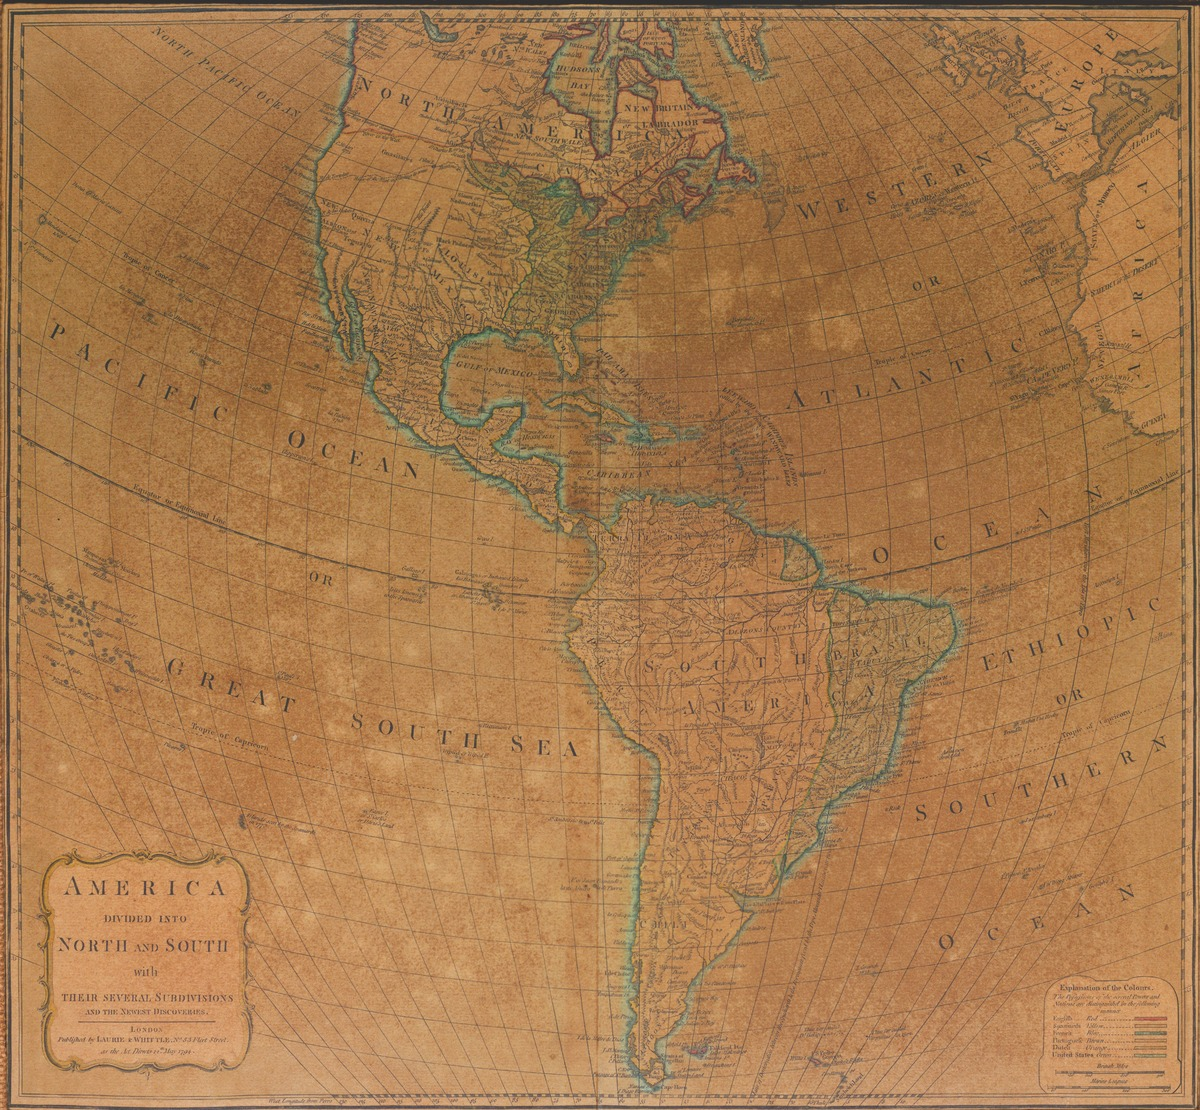 America divided into north and south with their several subdivisions and the newest discoveries . . . 12th May 1794.